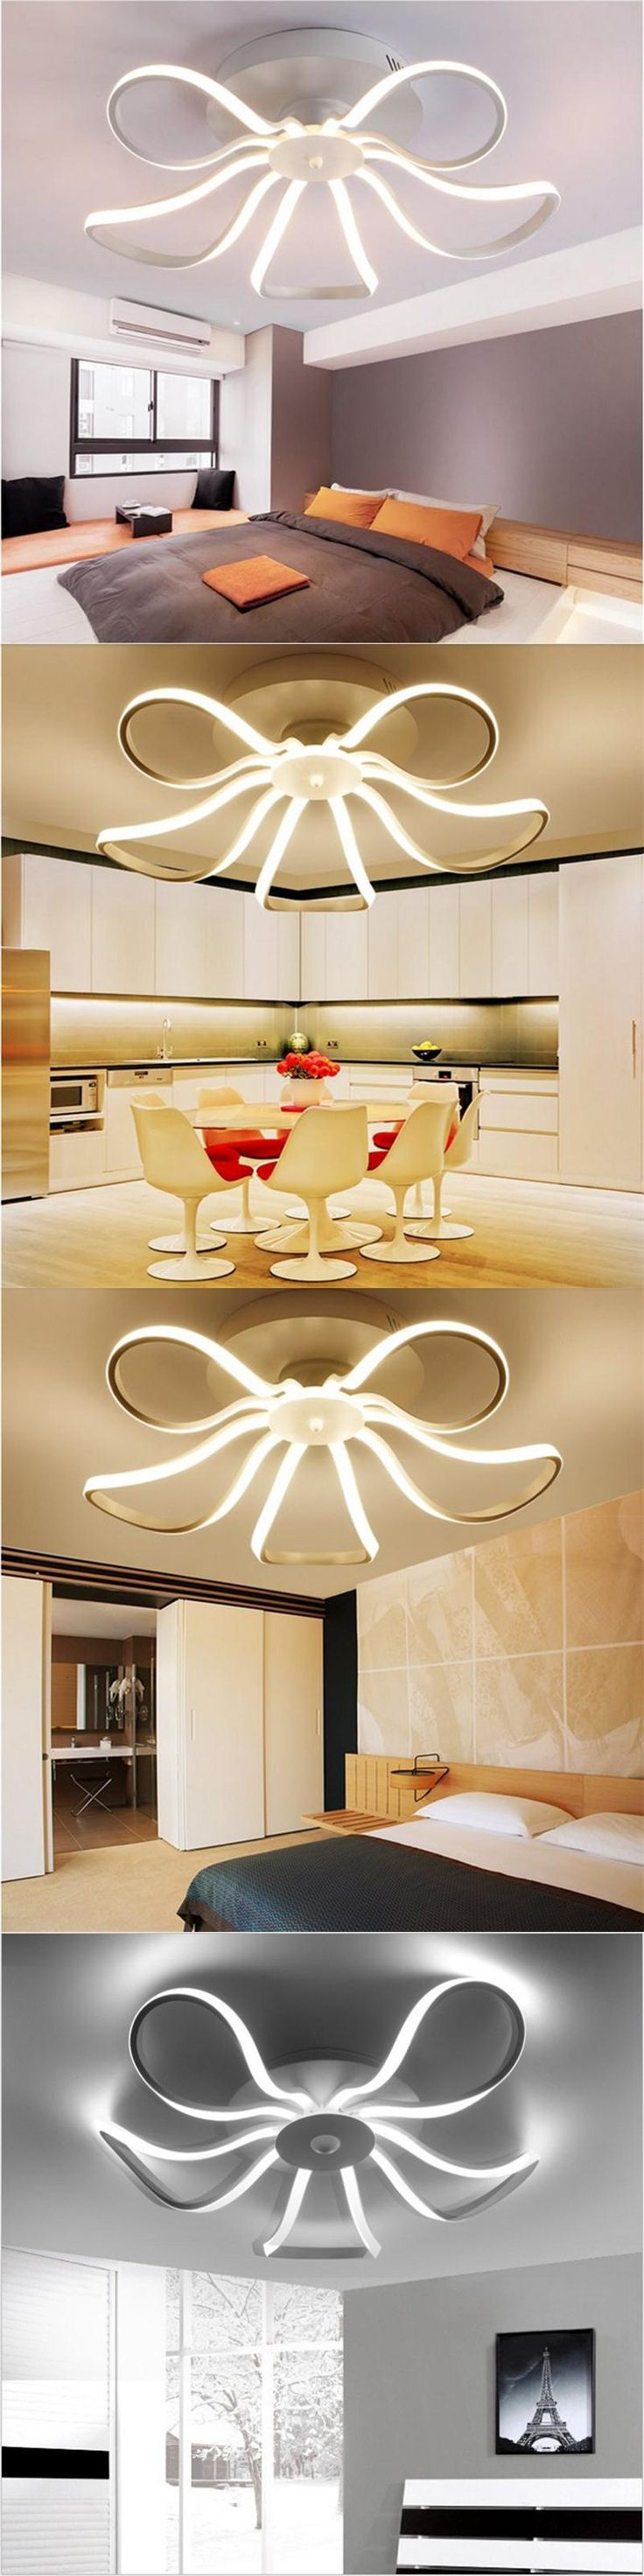 Distorted Rings Modern LED Ceiling Lights Remote Control Ceiling Lamp Fixtures Living Room Bedroom Lustre Lamparas De Techo